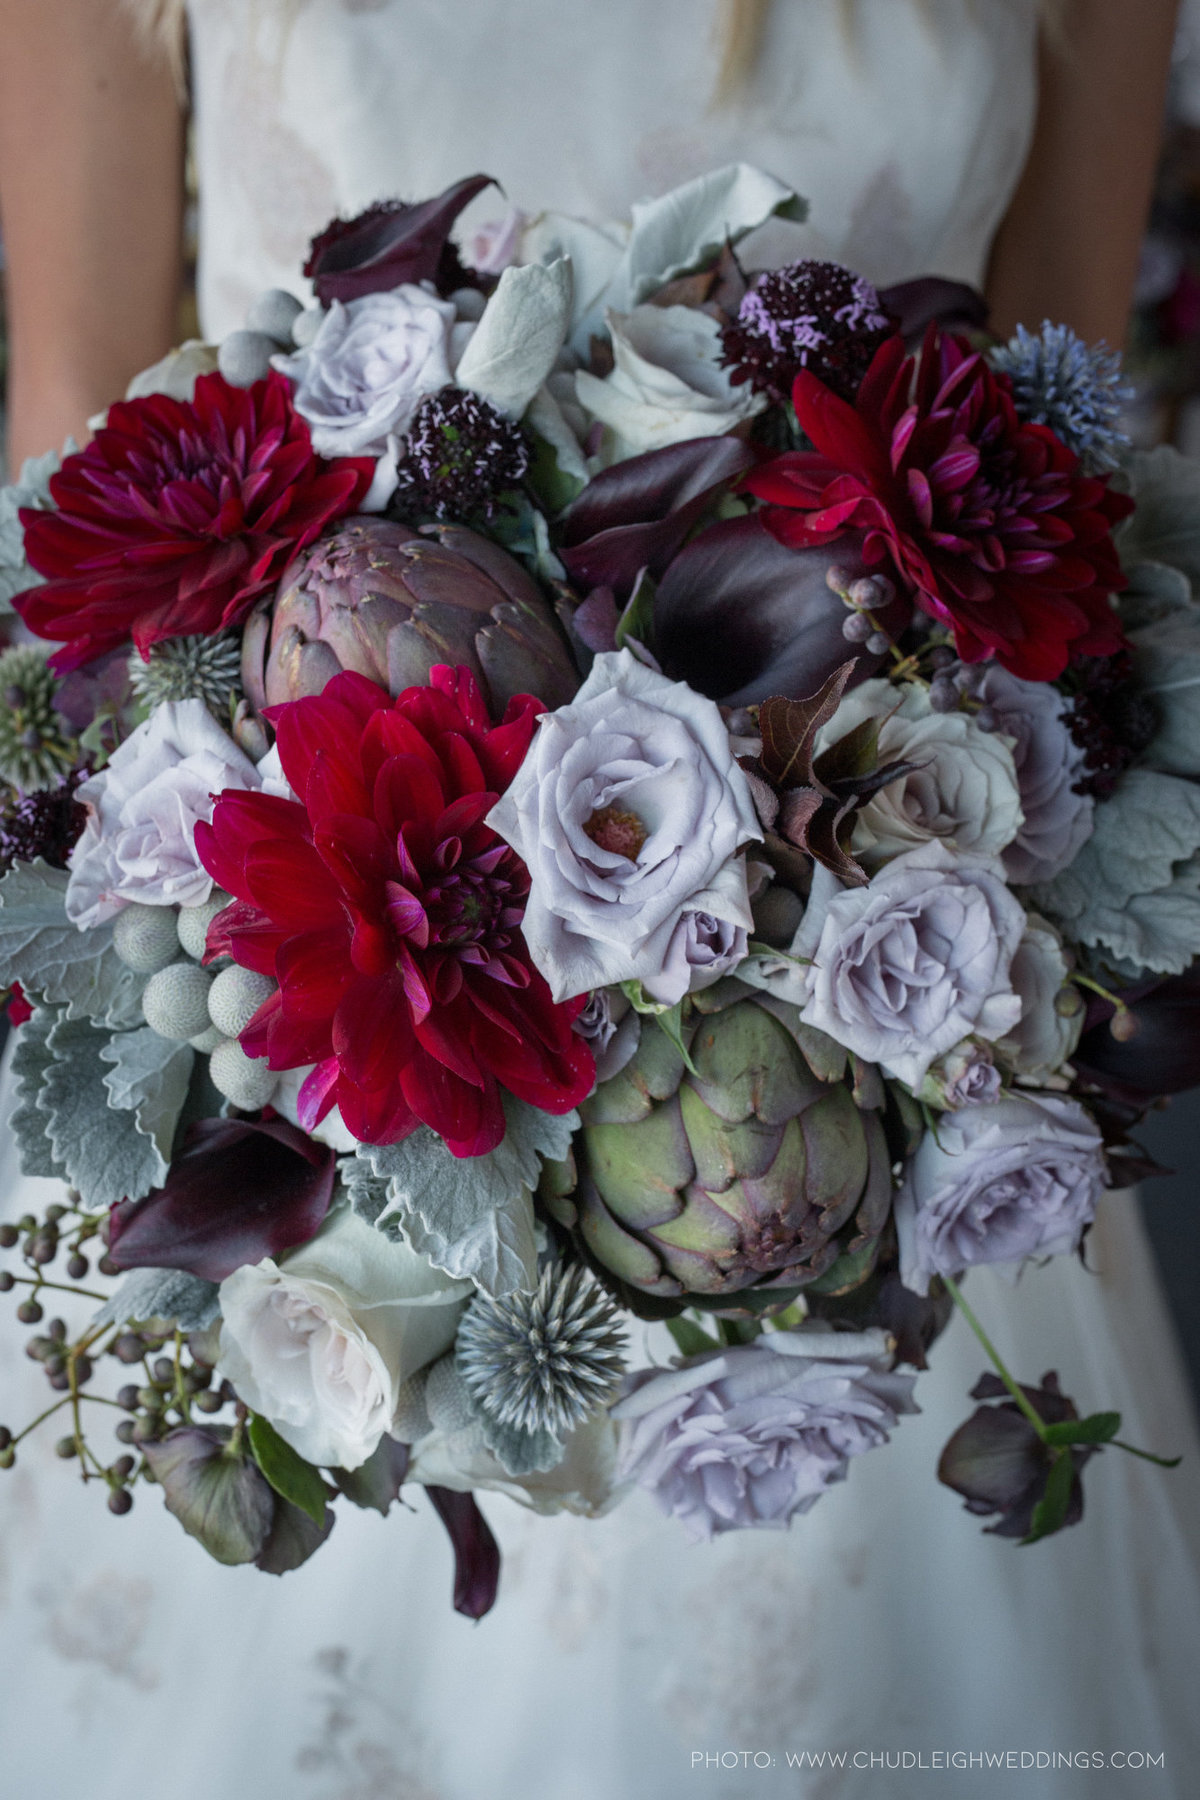 Utah Florist_Jewel-Tone-Wedding-Ideas-Purple-Wedding Flowers-132